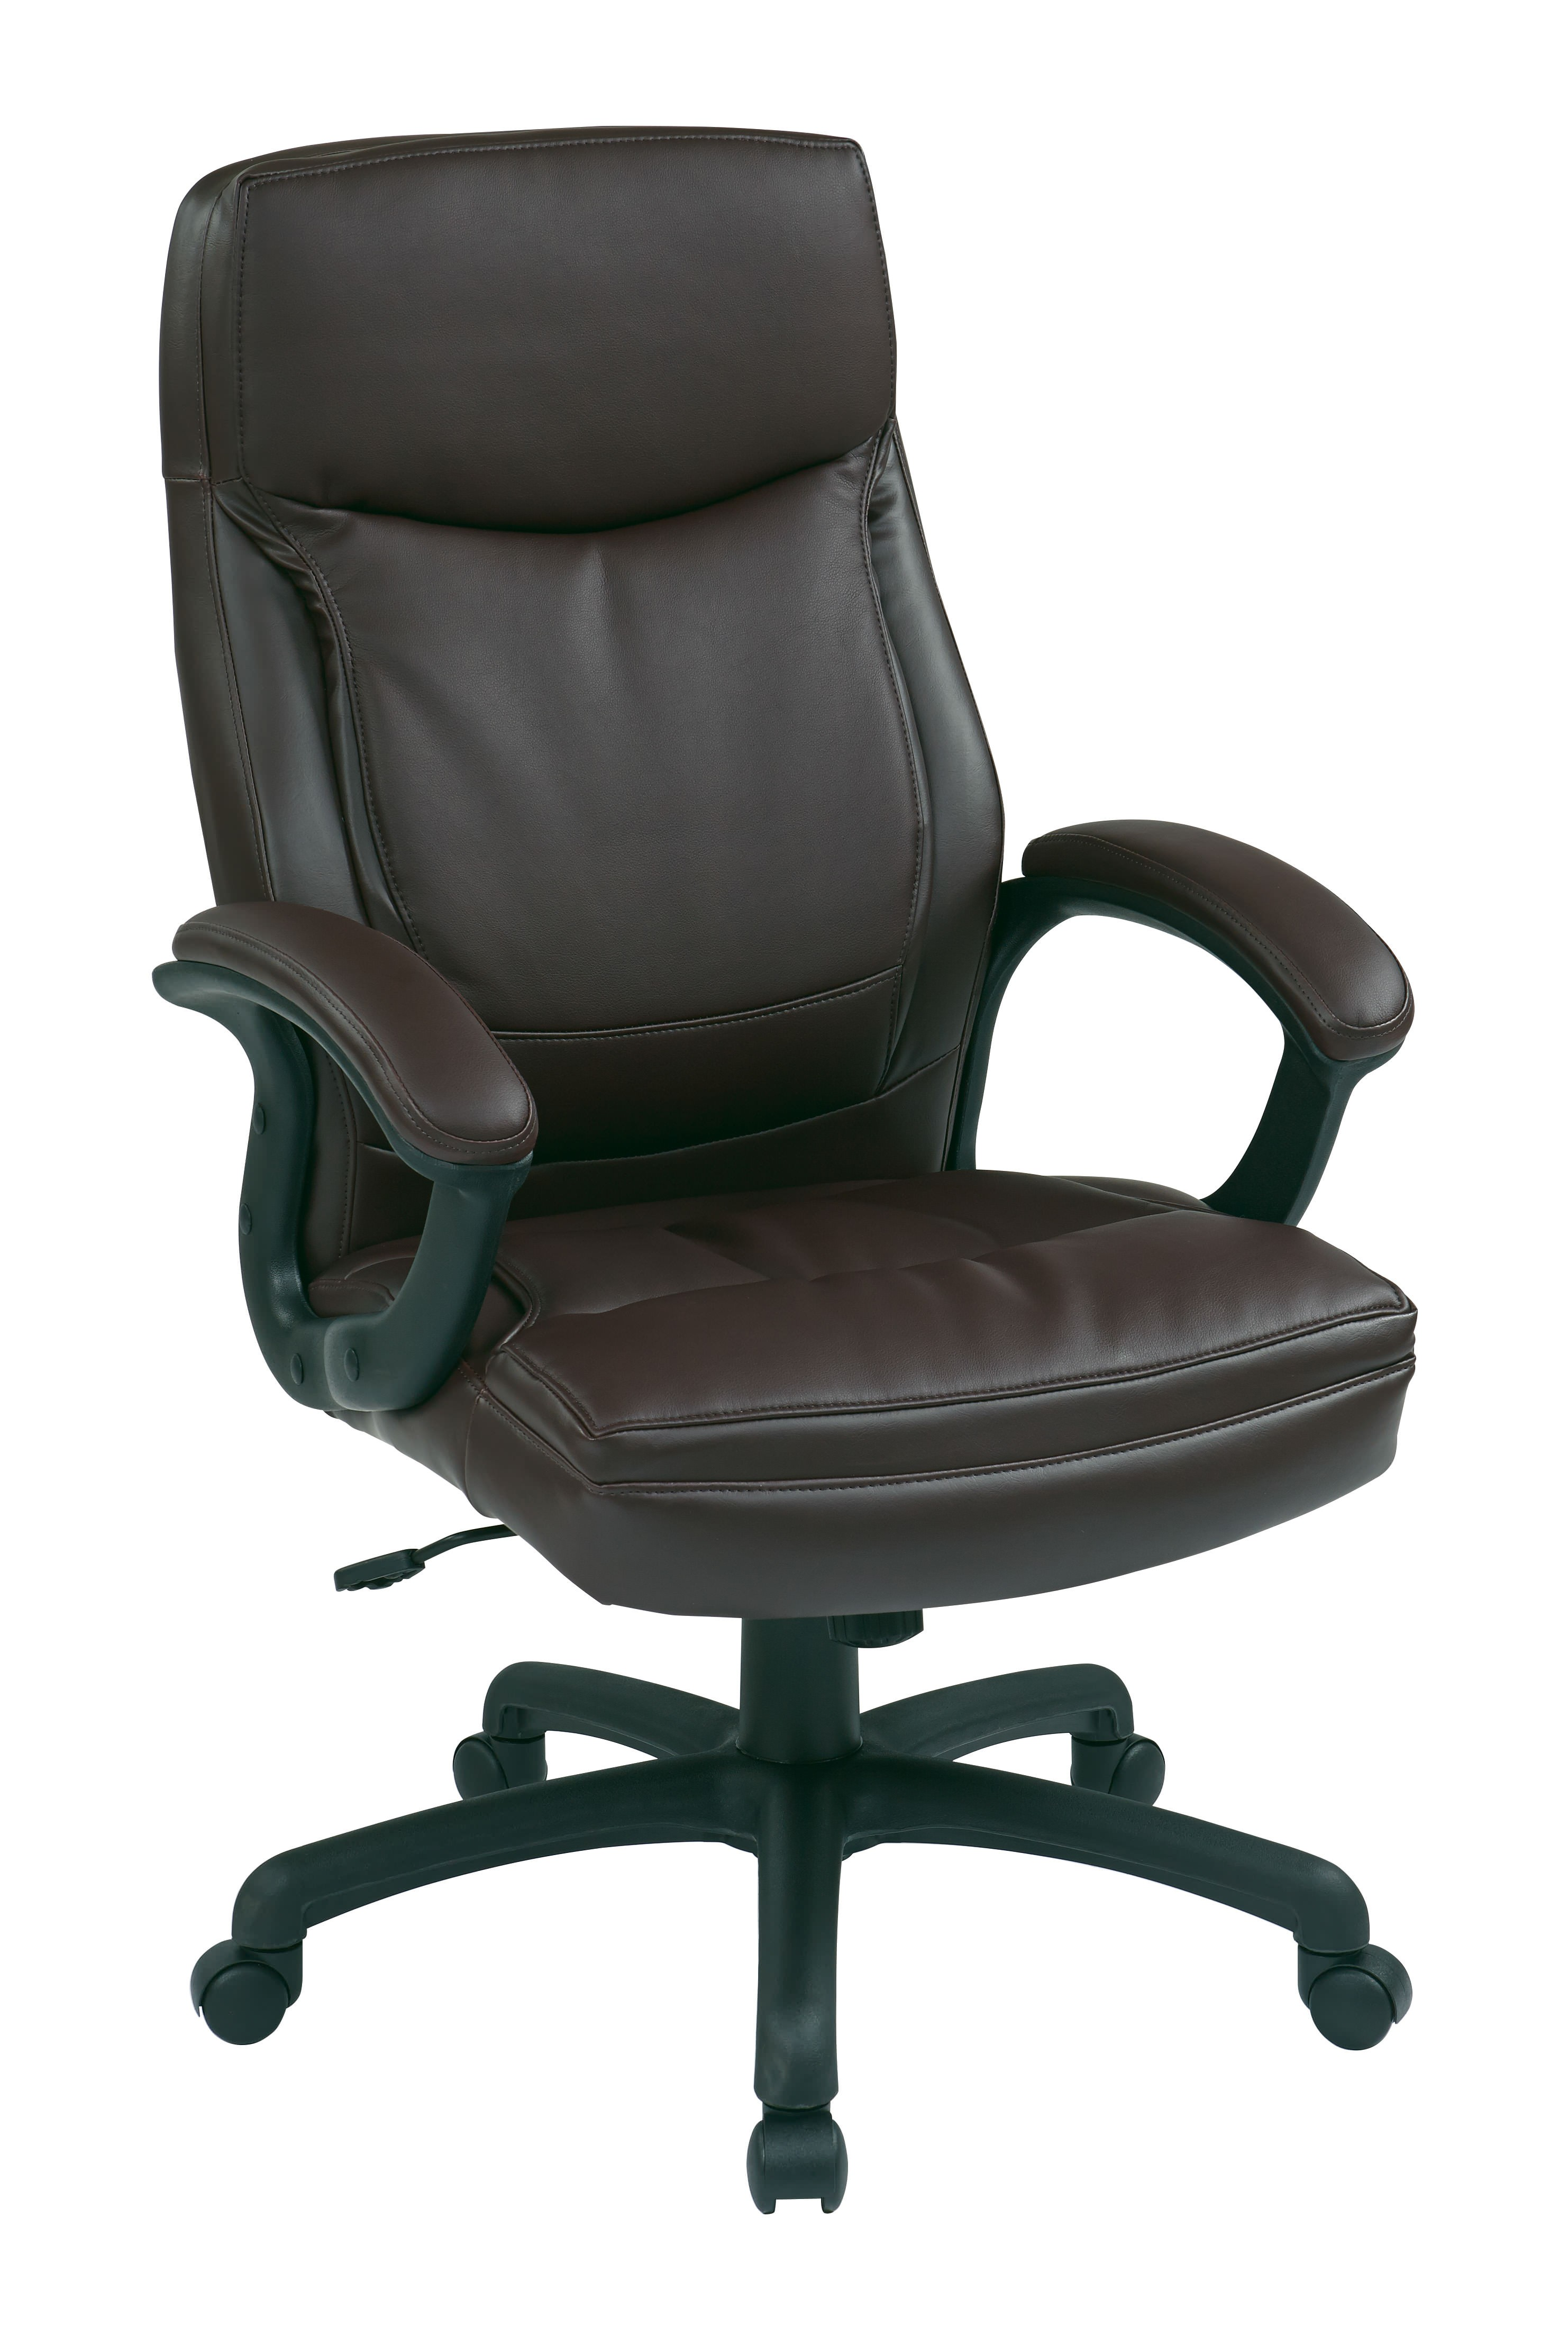 New fice furniture Mocha High Back Leather Managers Chair